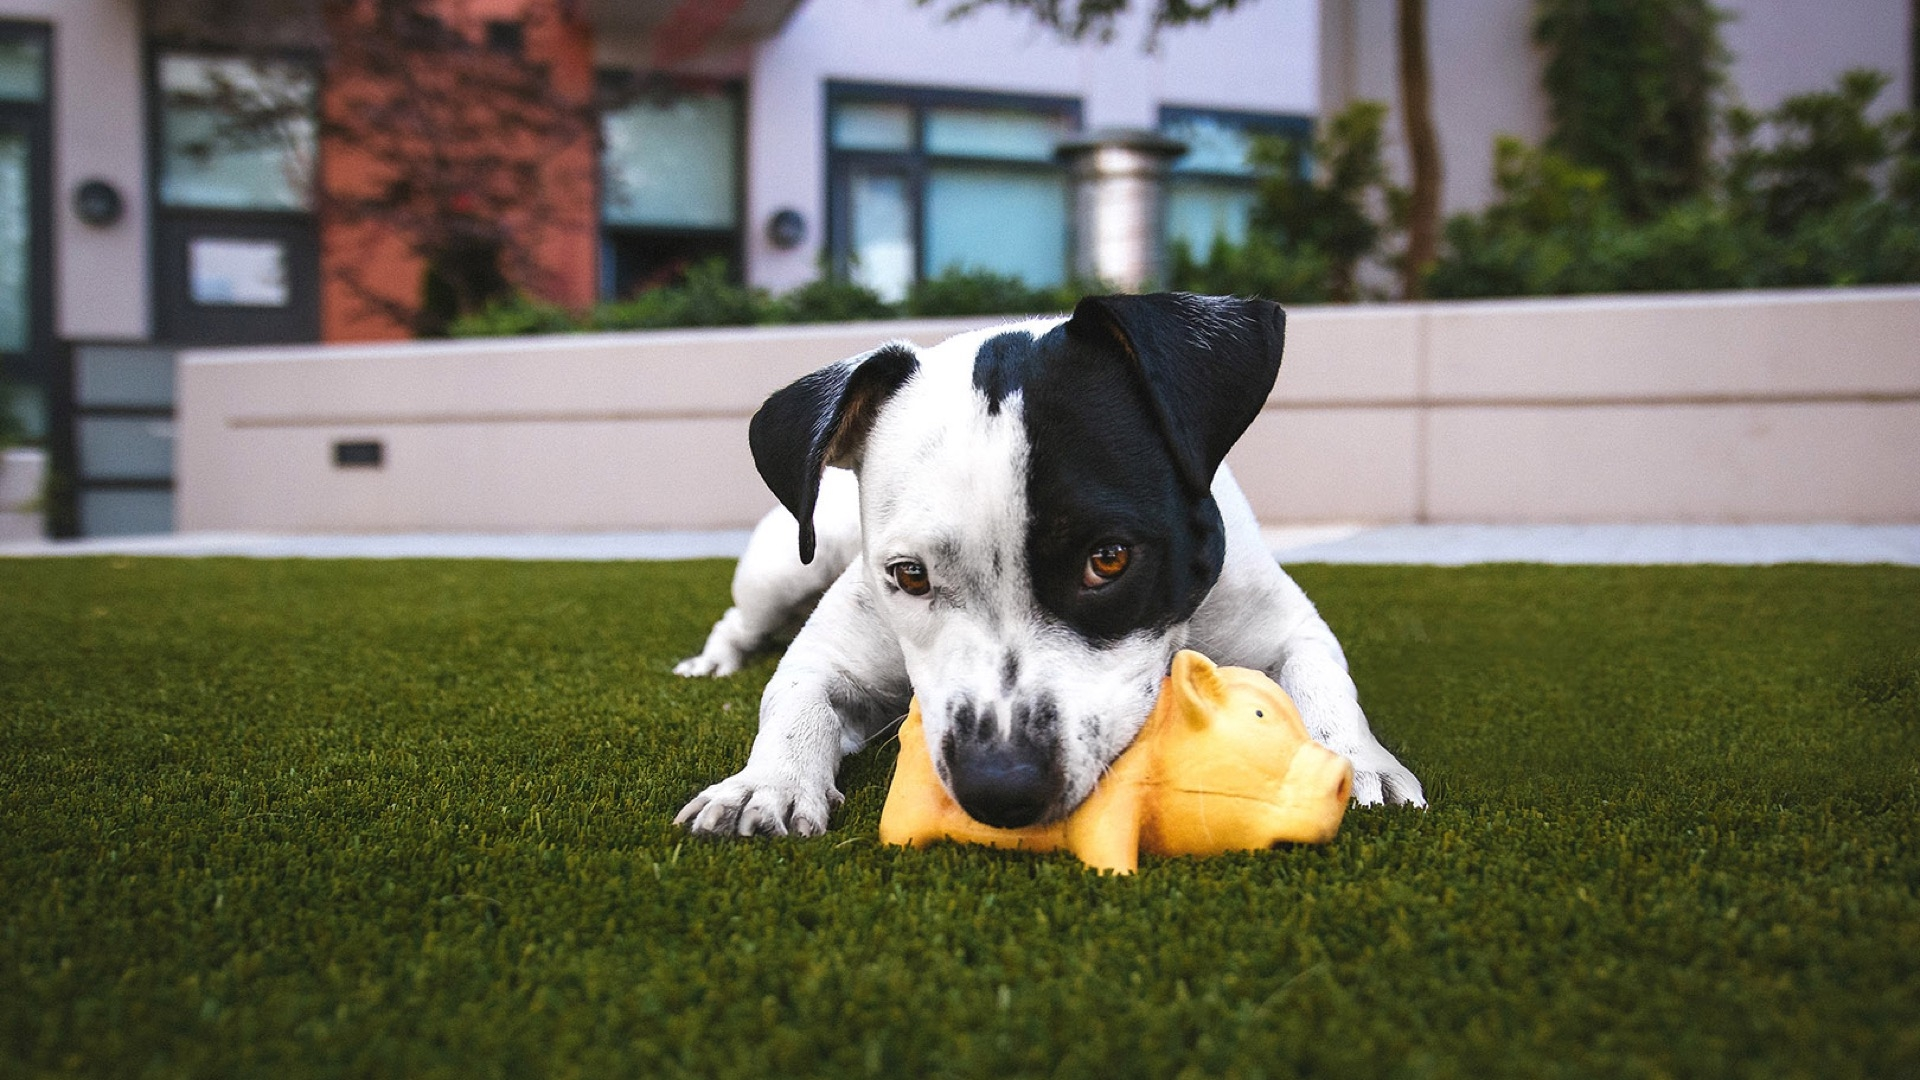 puppy chewing on a toy pig